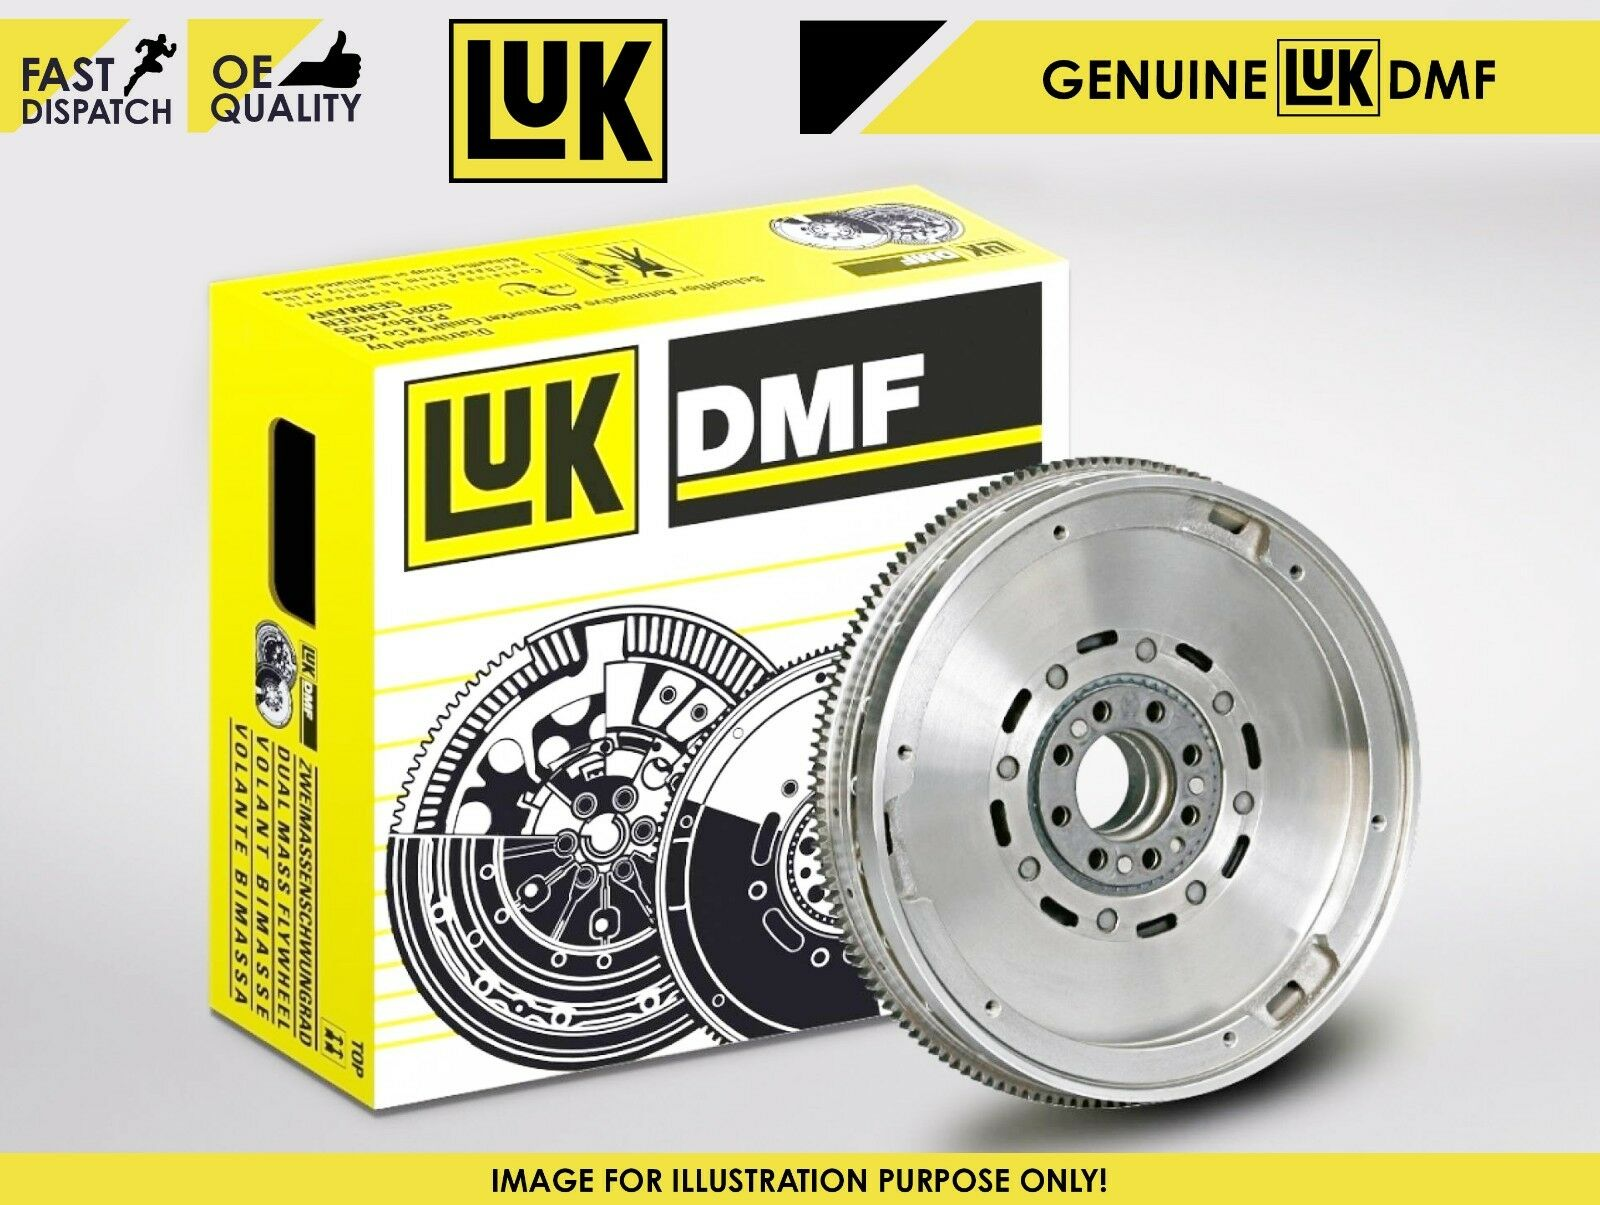 AUDI A6 4F 2.0D Dual Mass Flywheel DMF 04 to 11 LuK 03G105266AT 03G105266BH New